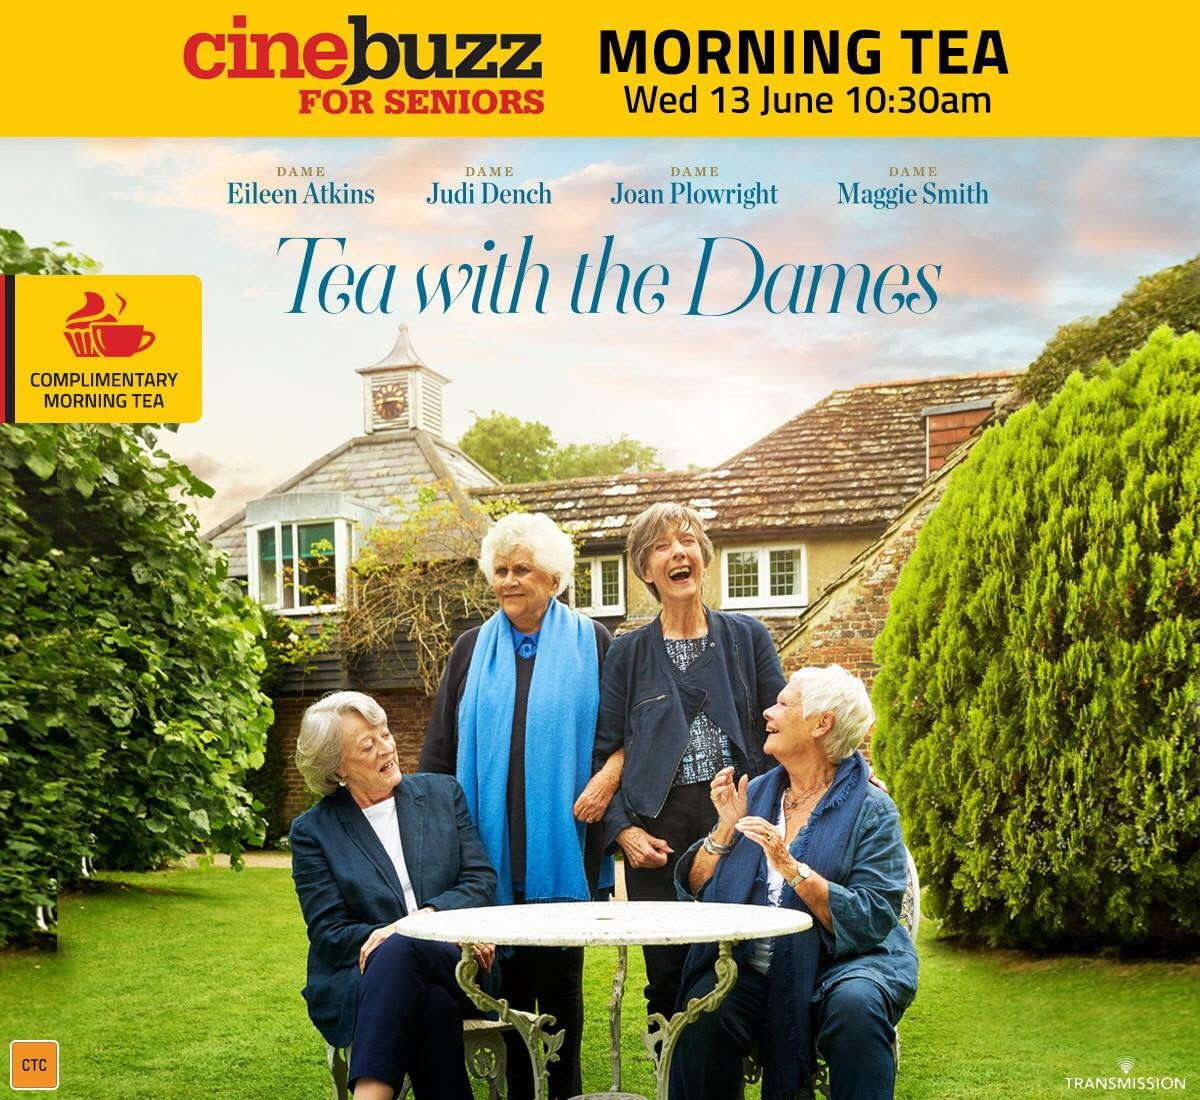 Andre & Tea with the Dames Image-2